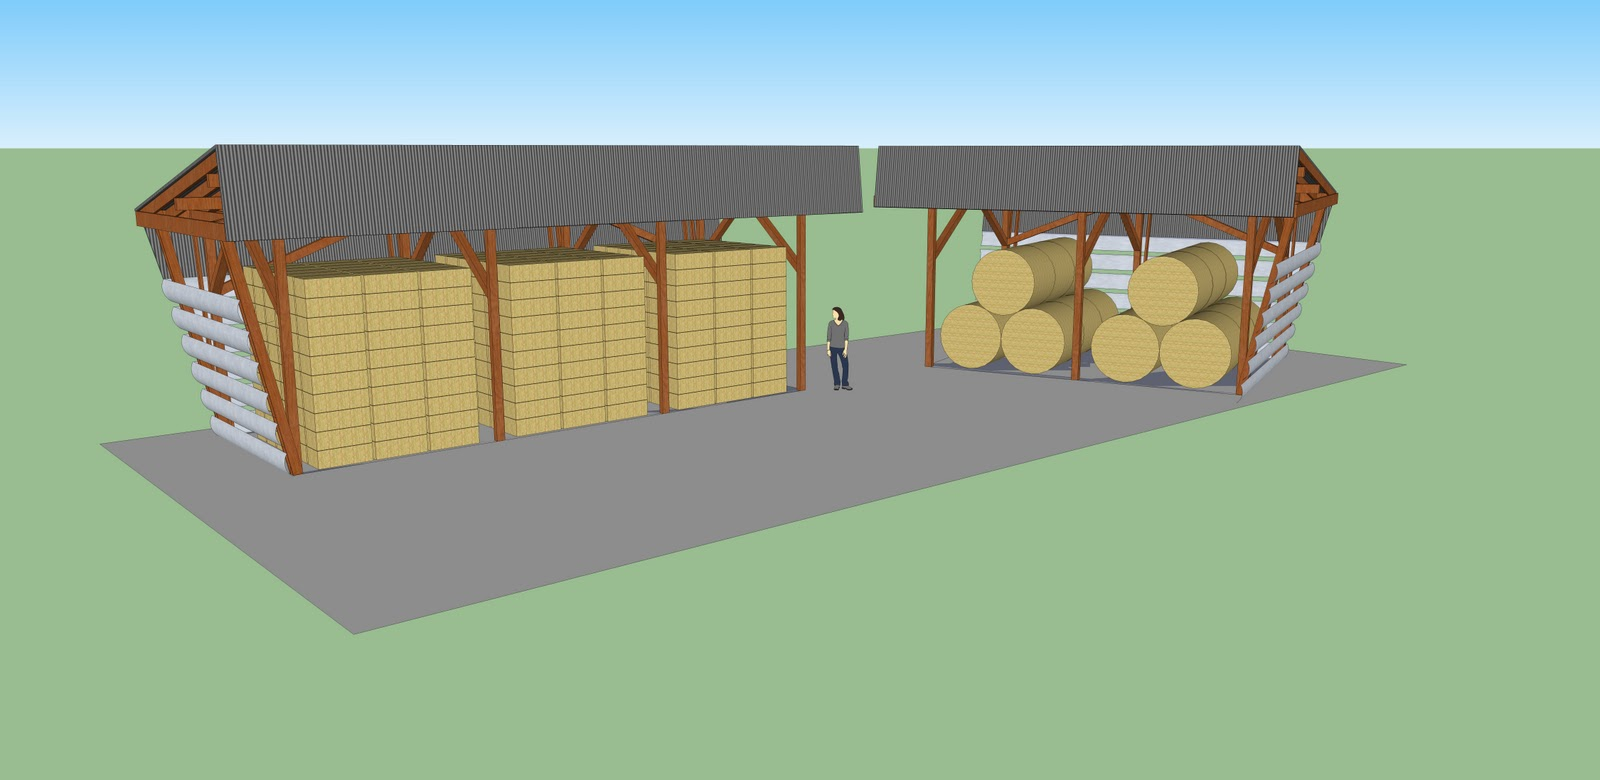 Barnstone design build 2 hay barn design 2 for Hay design